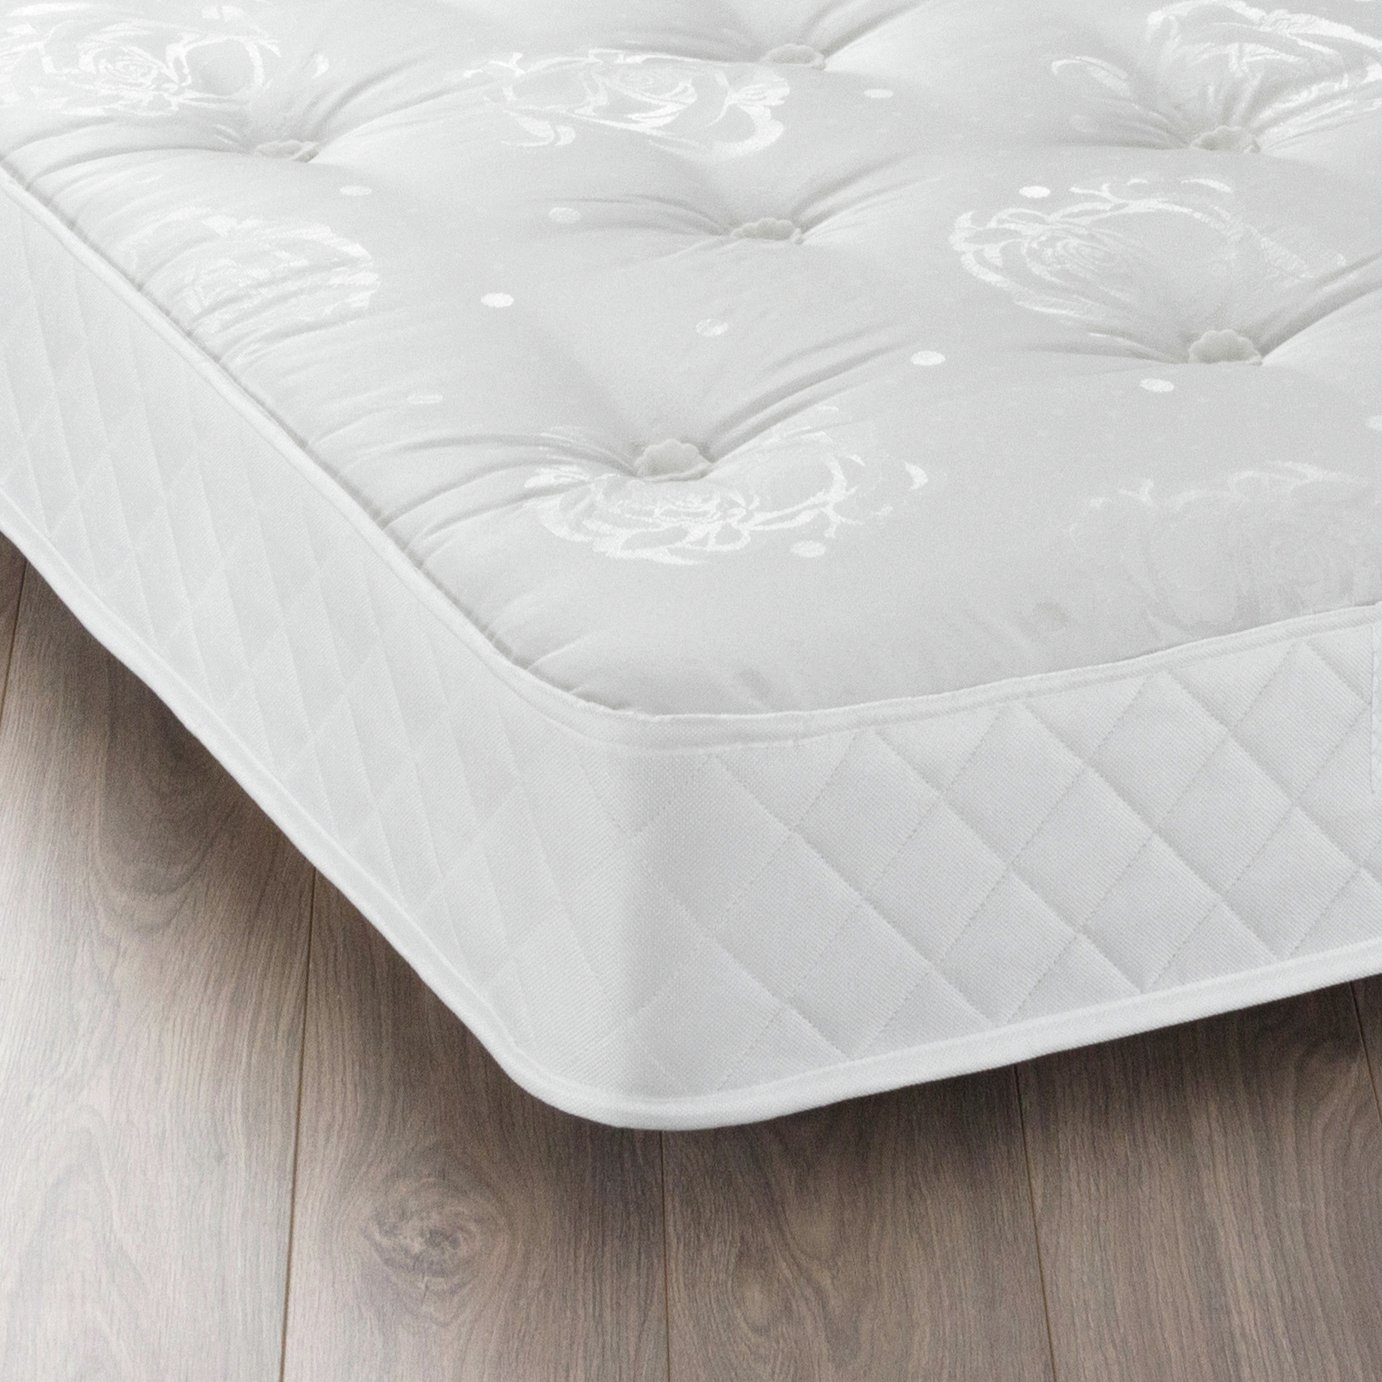 Airsprung Carlton 800 Pocket Single Mattress